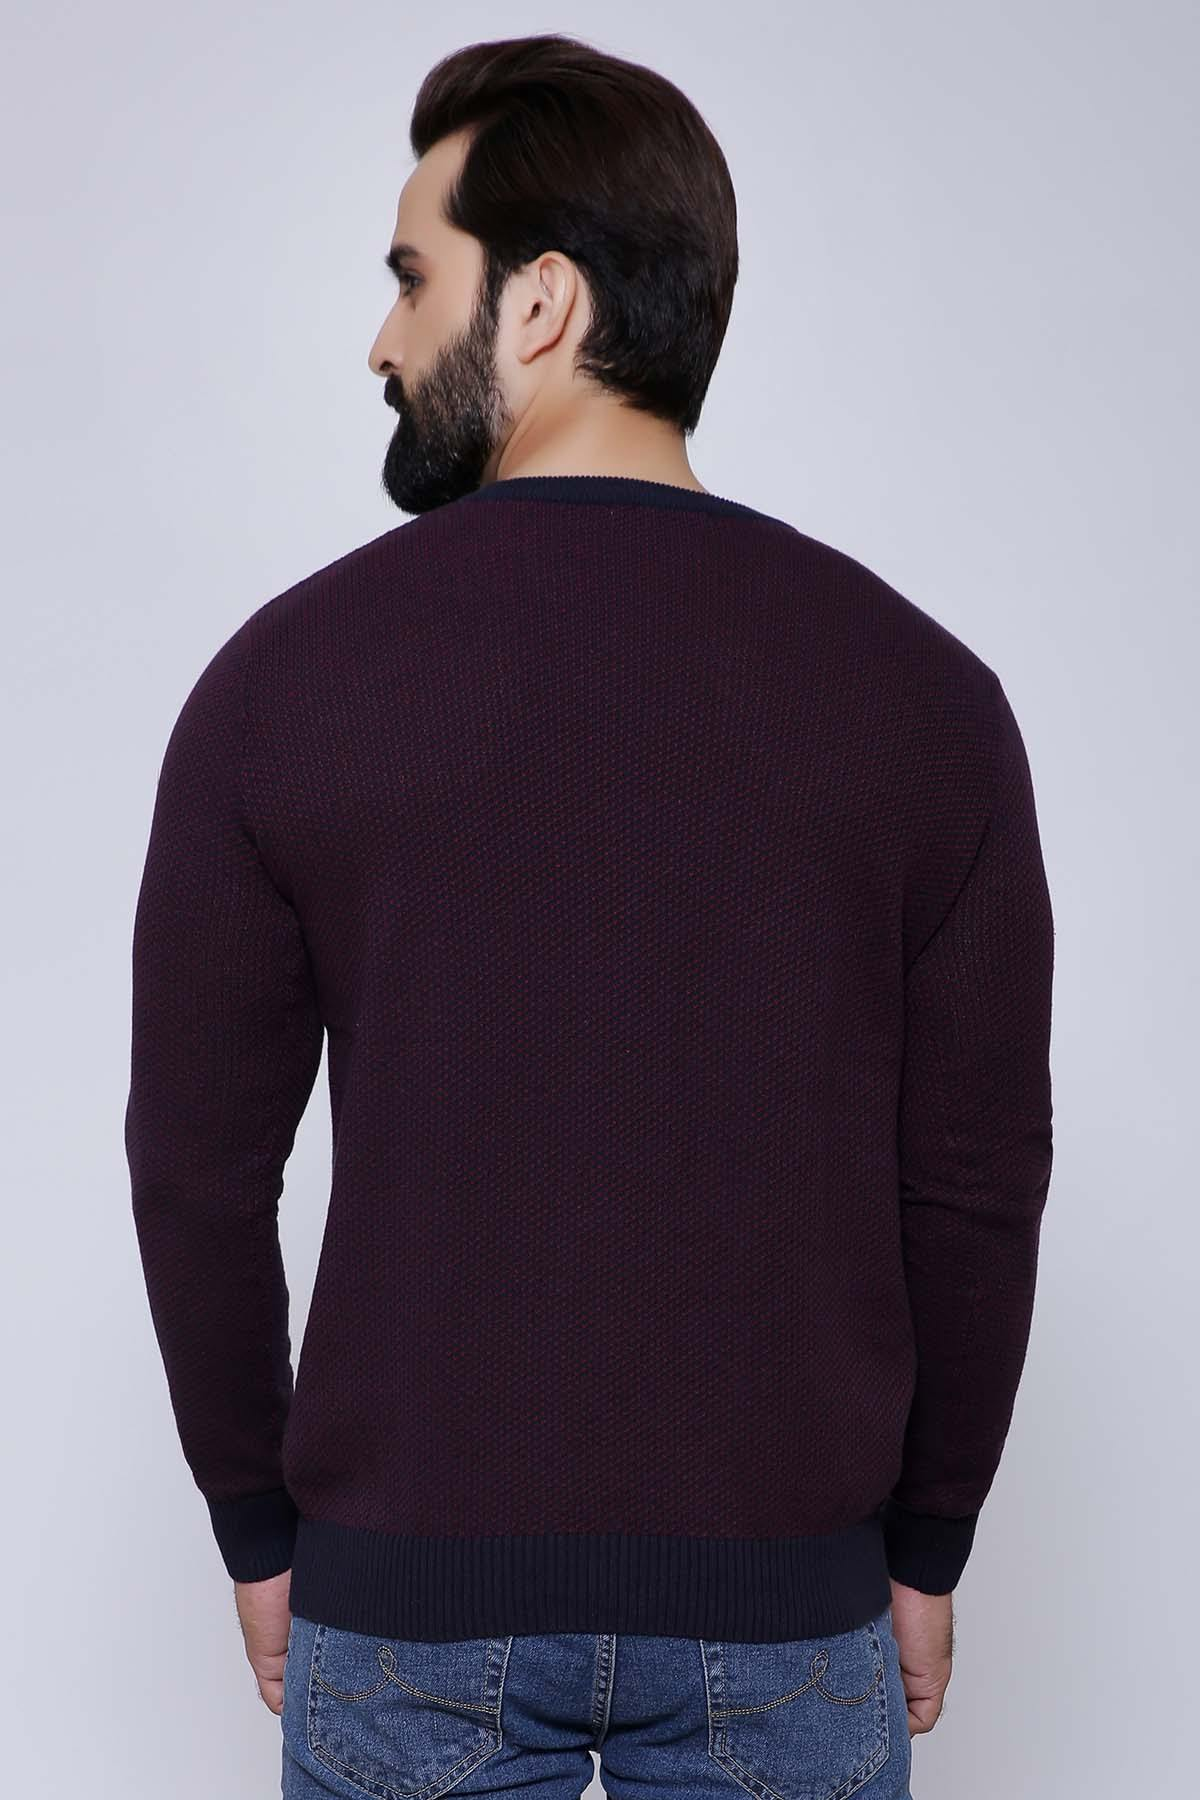 SWEATER V NECK FULL SLEEVE MAHROON - Charcoal